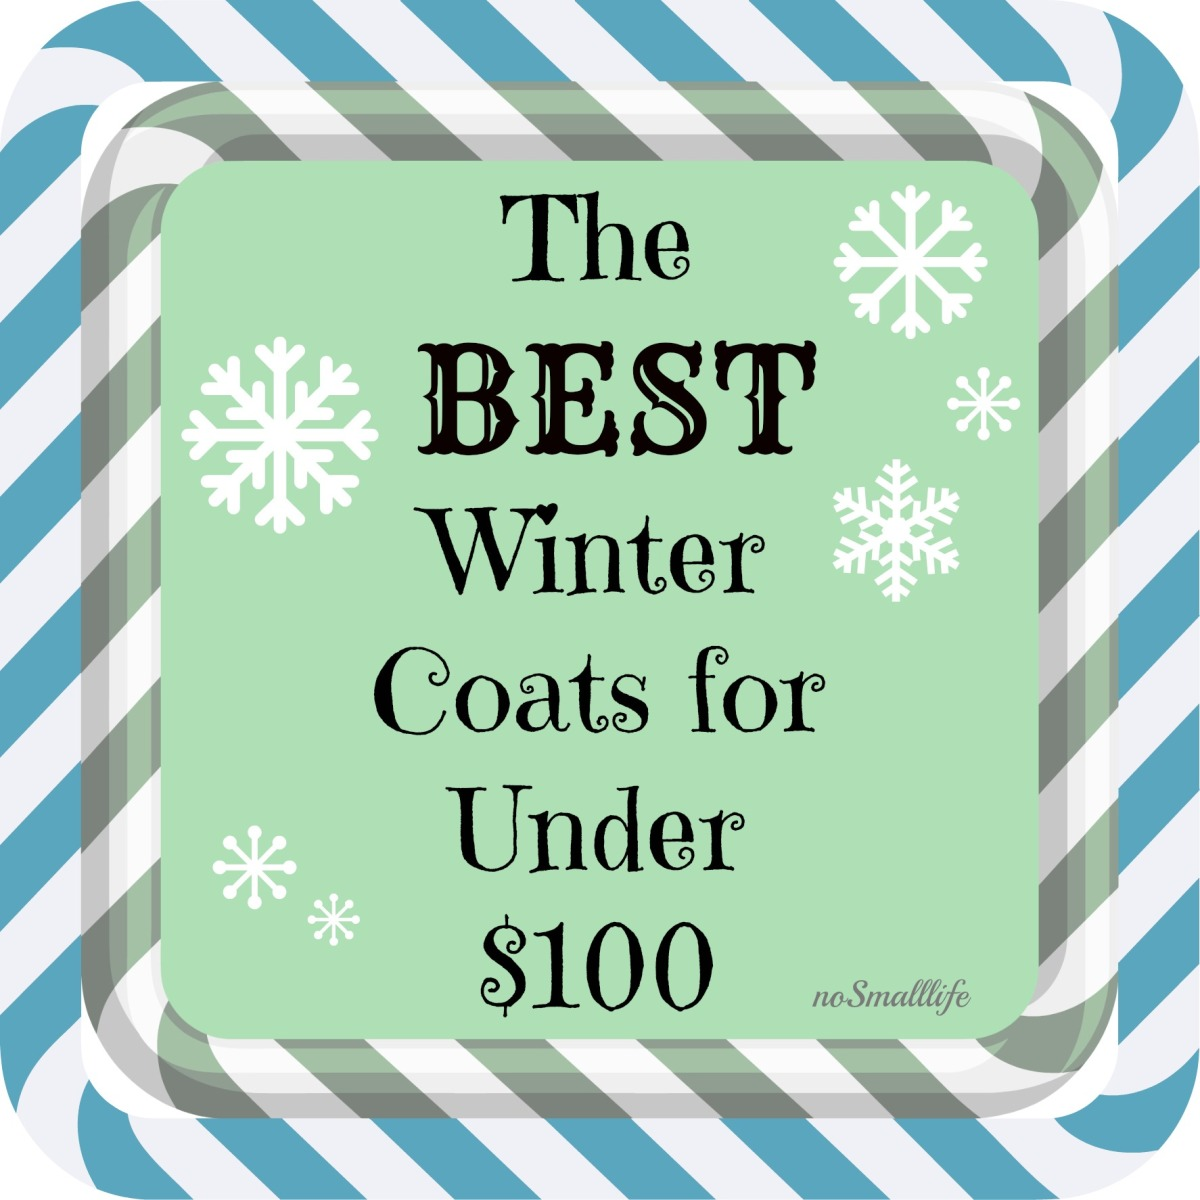 The BEST Winter Coats for Under $100